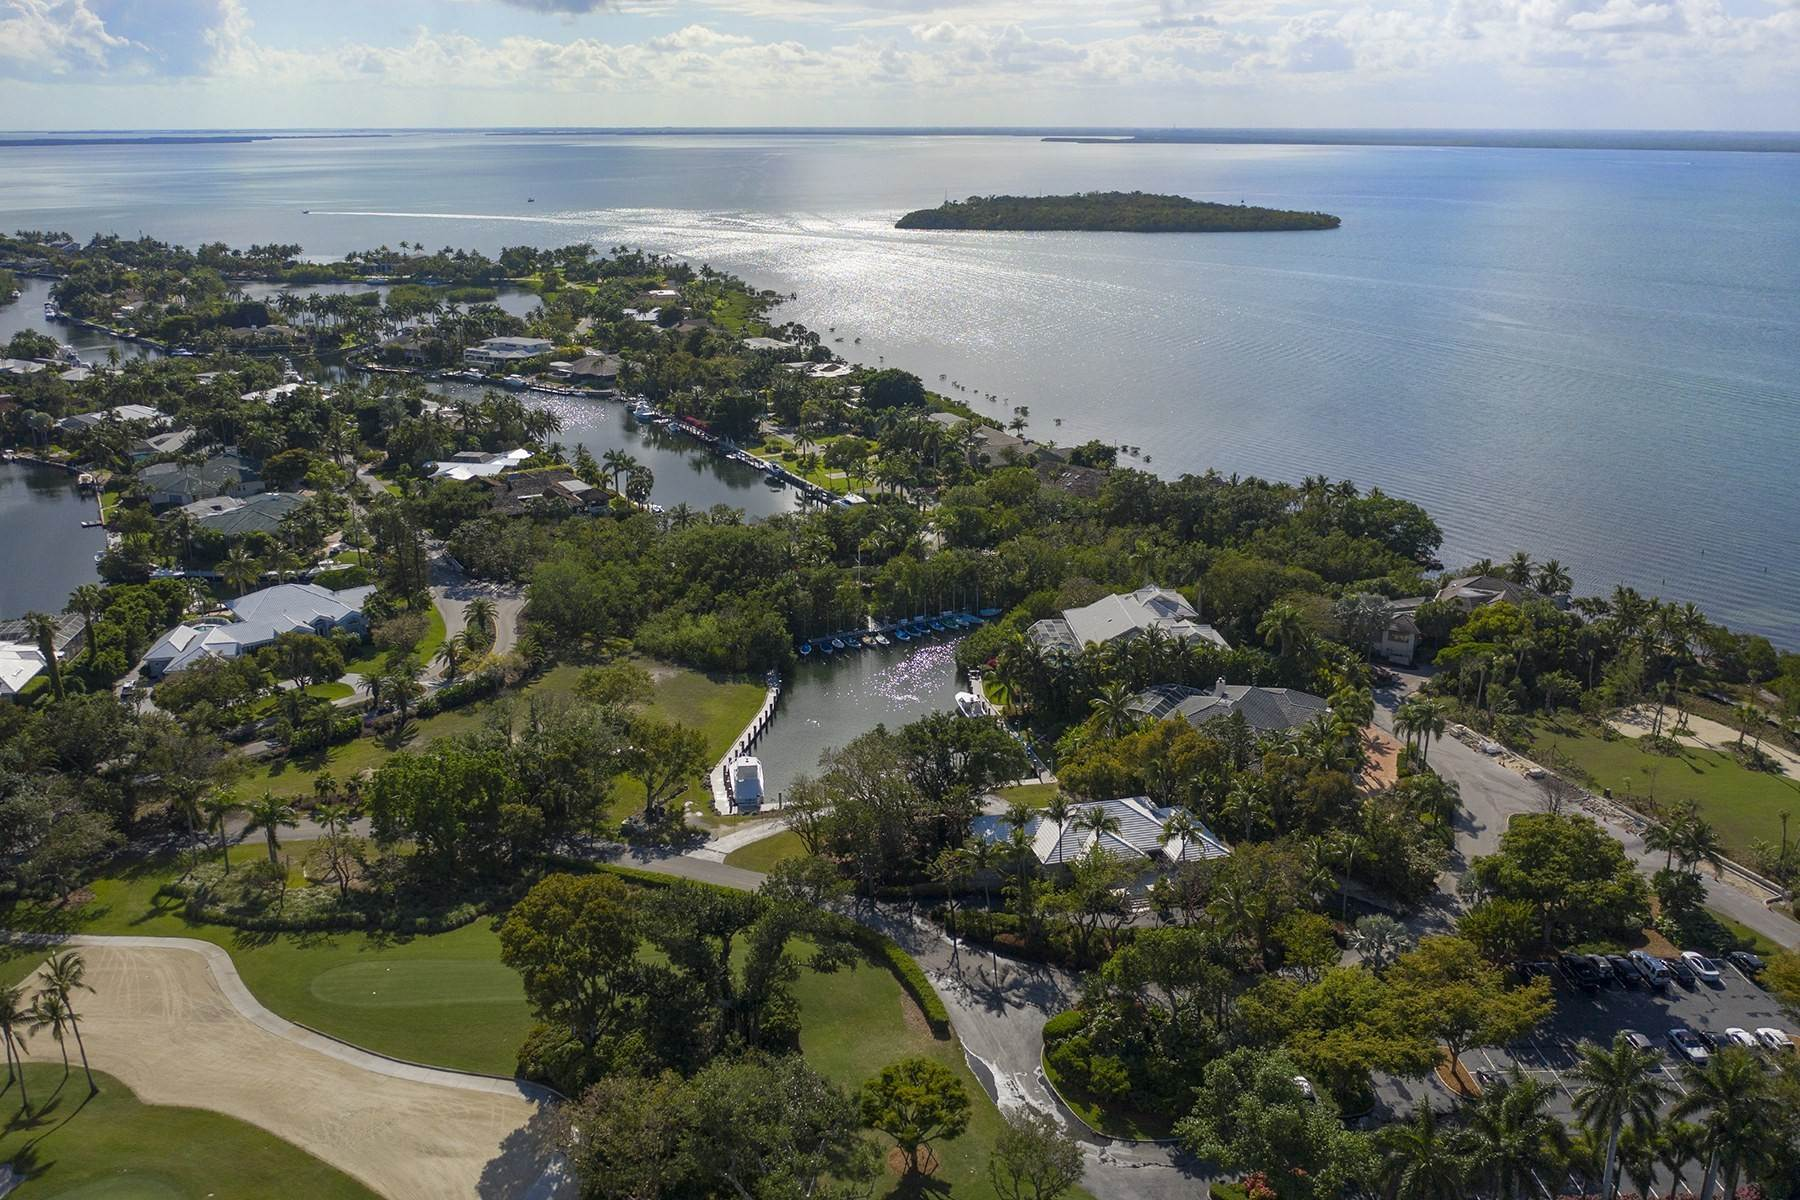 15. Property for Sale at Pumpkin Key - Private Island, Key Largo, FL Key Largo, Florida 33037 United States